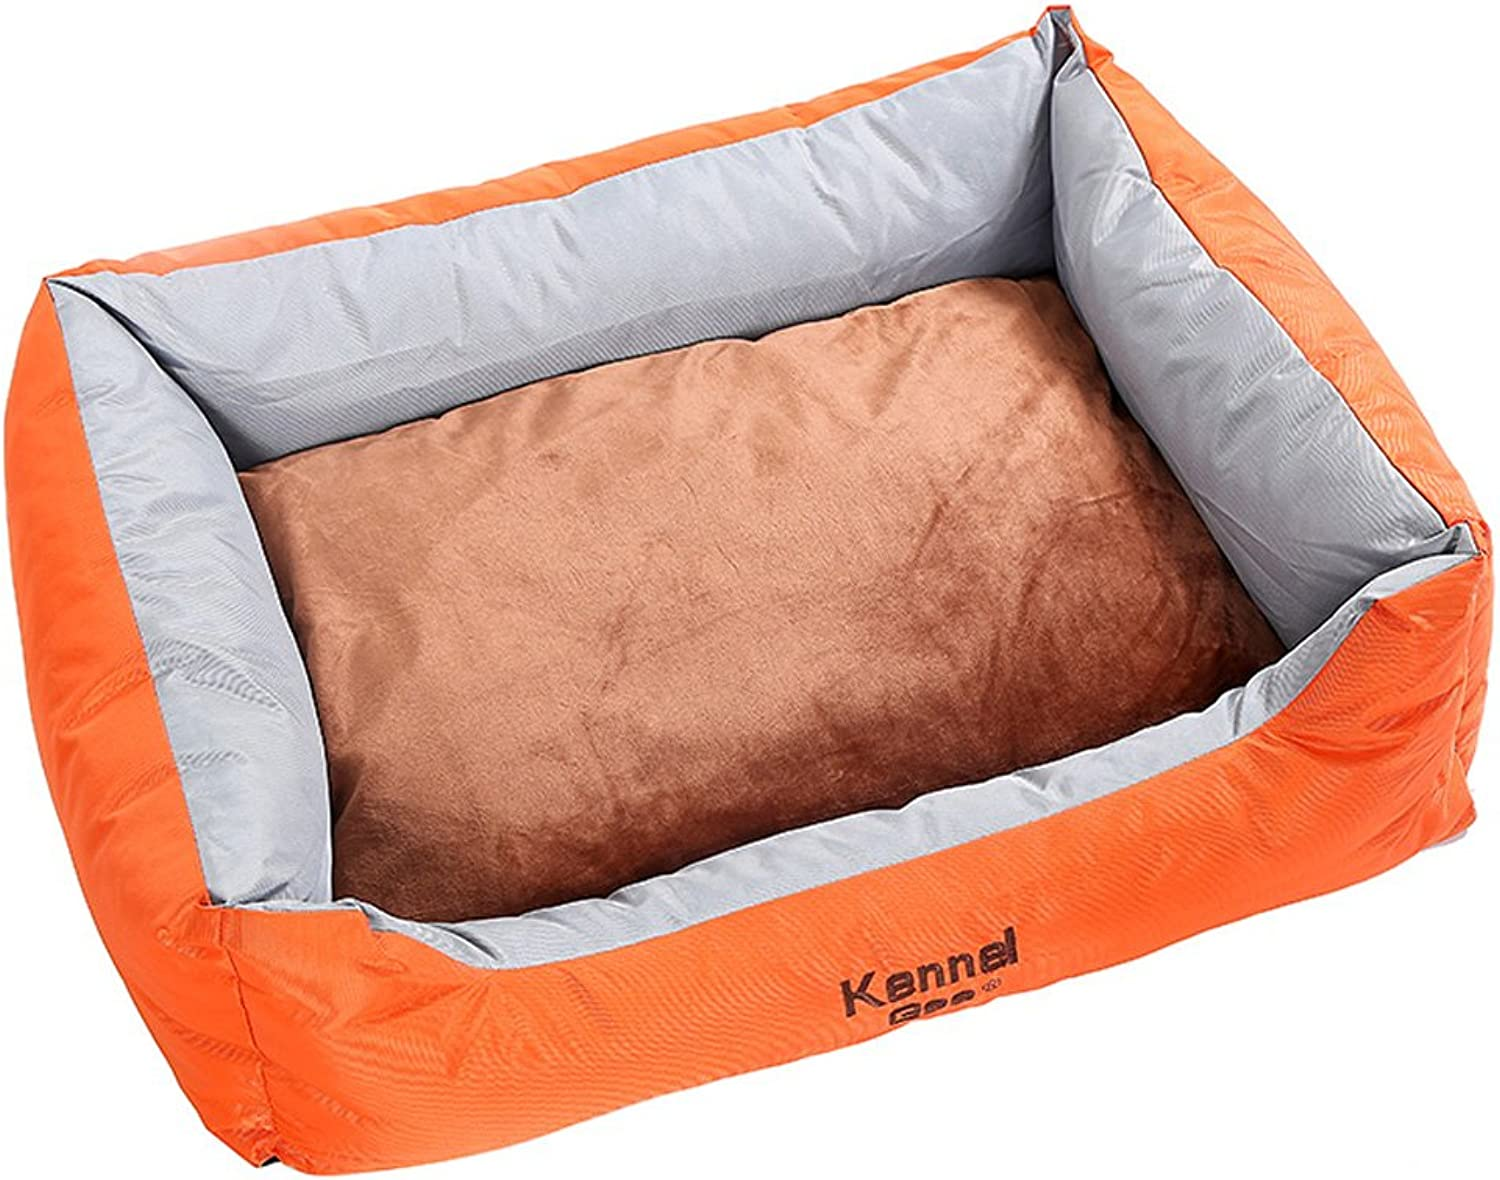 Friends Forever Premium Orthopedic Dog Bed Lounge, Removable Cover, Suede with Memory-Foam Base, Prestige Edition